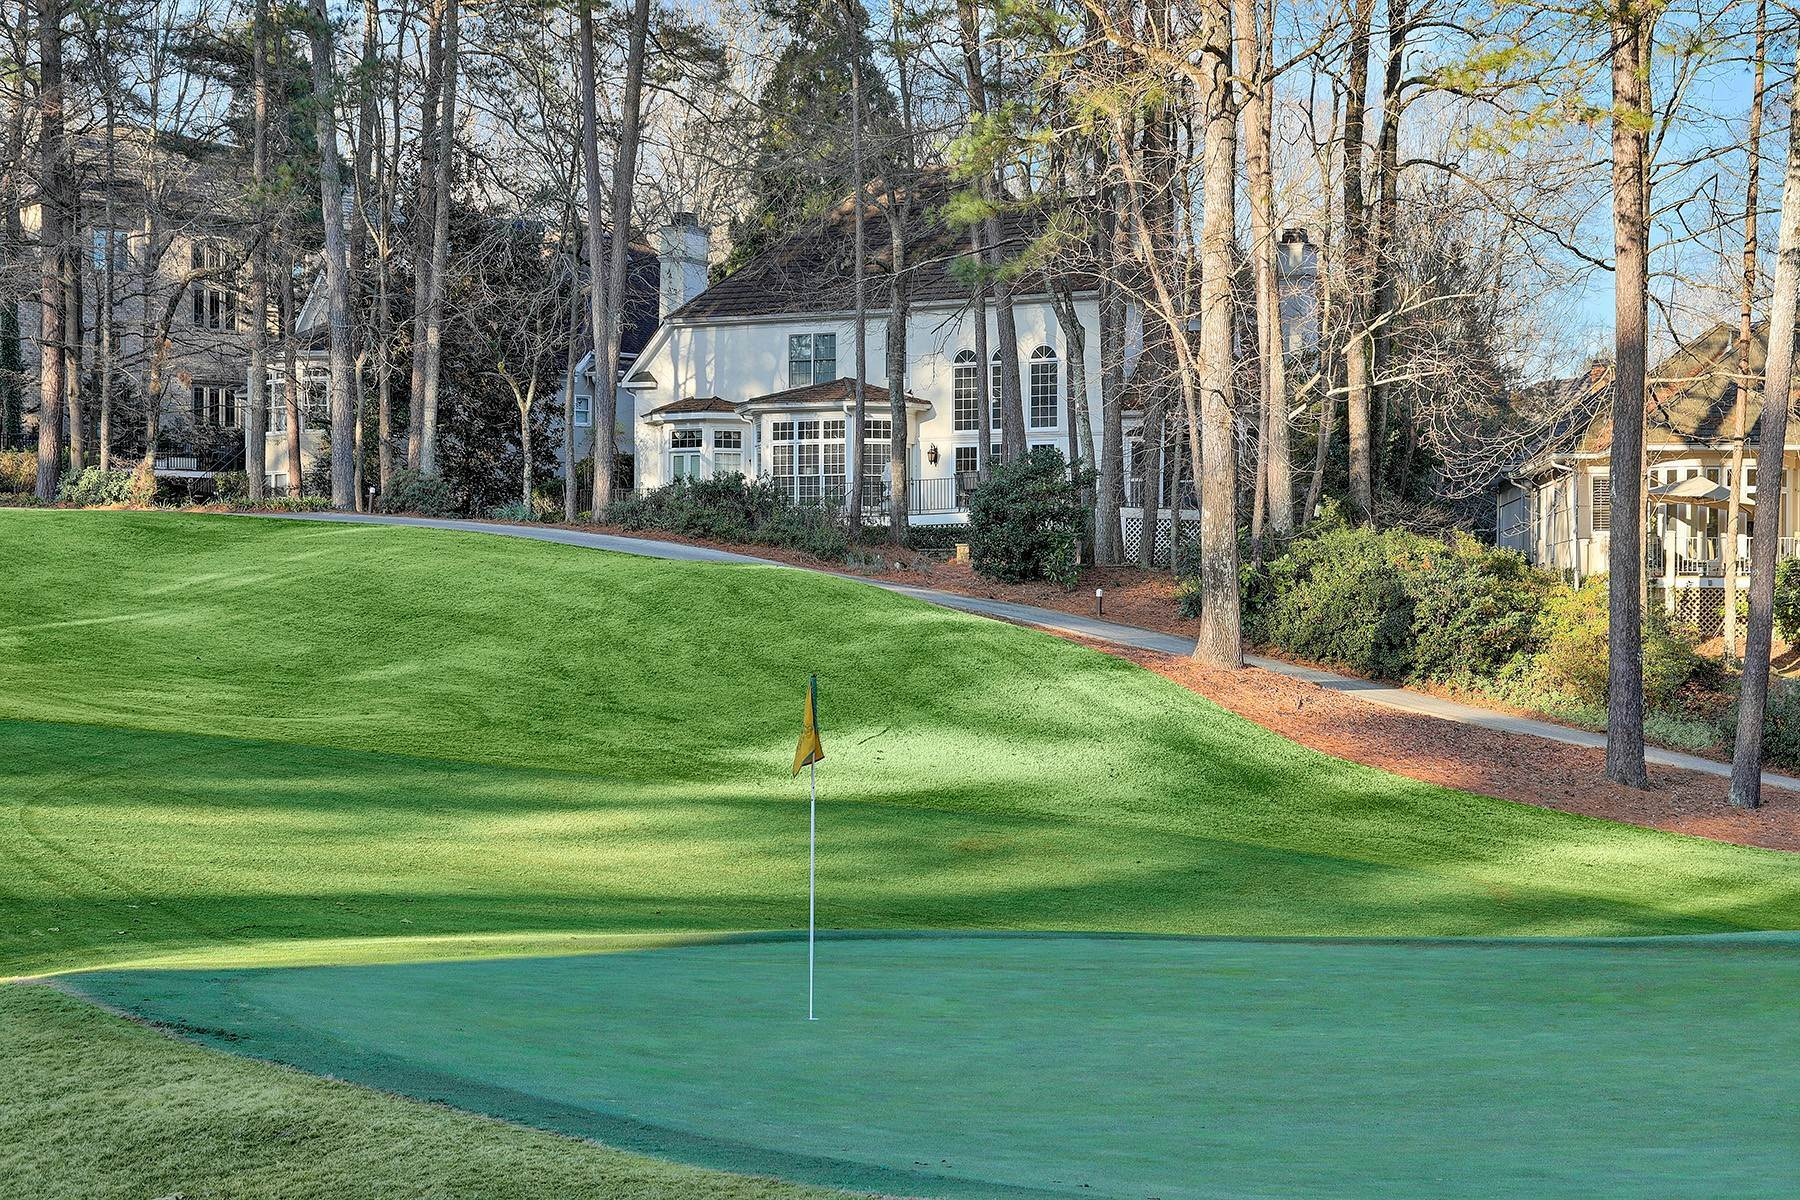 Single Family Homes for Sale at Manor Home With Breathtaking Golf Course Views 4275 Fairway Villas Drive Johns Creek, Georgia 30022 United States